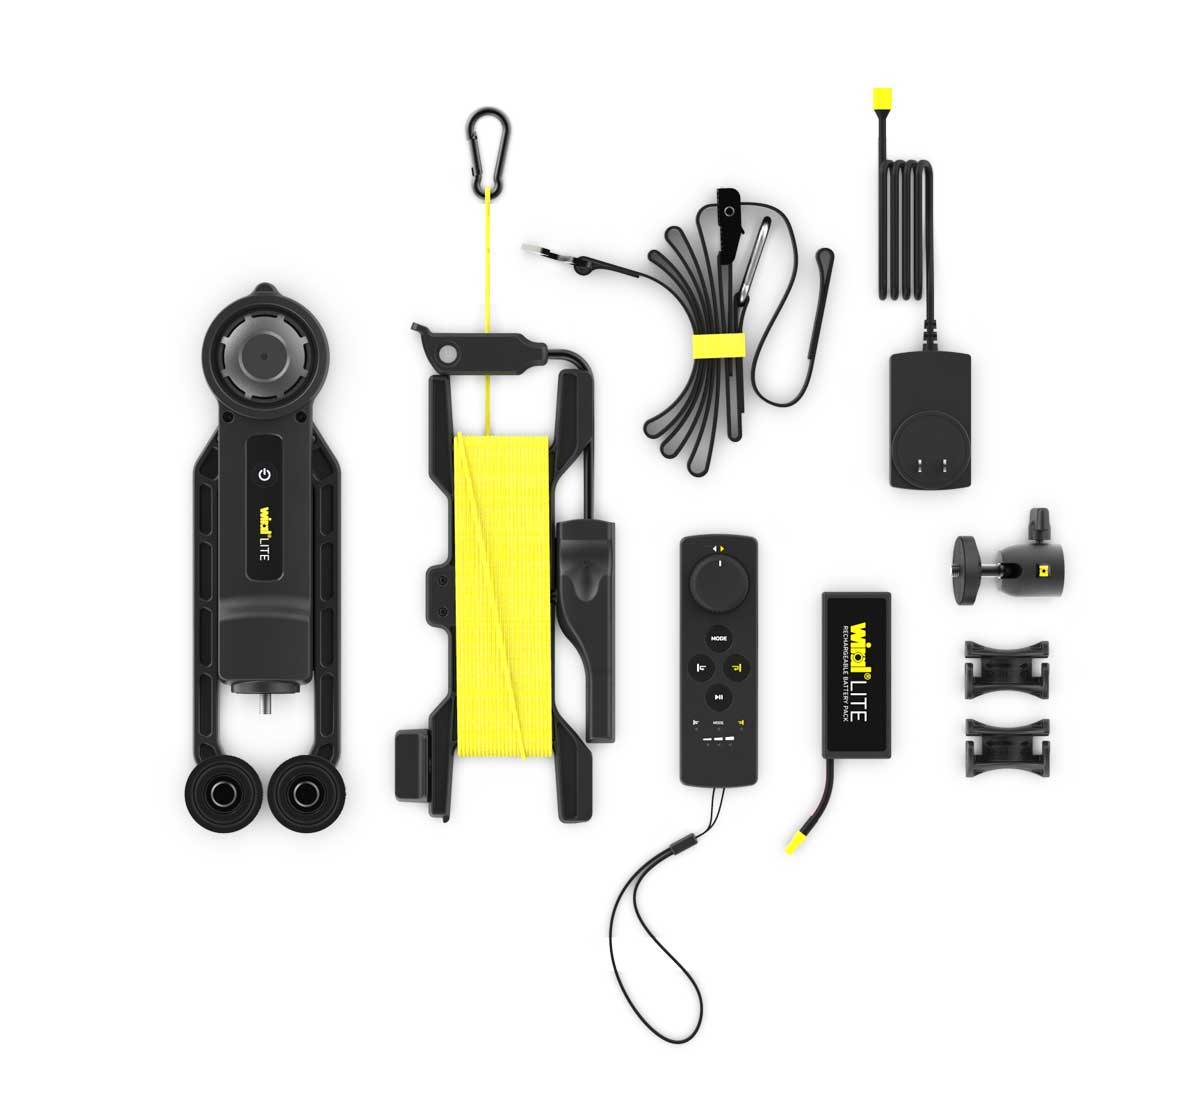 Wiral LITE complete kit with all components